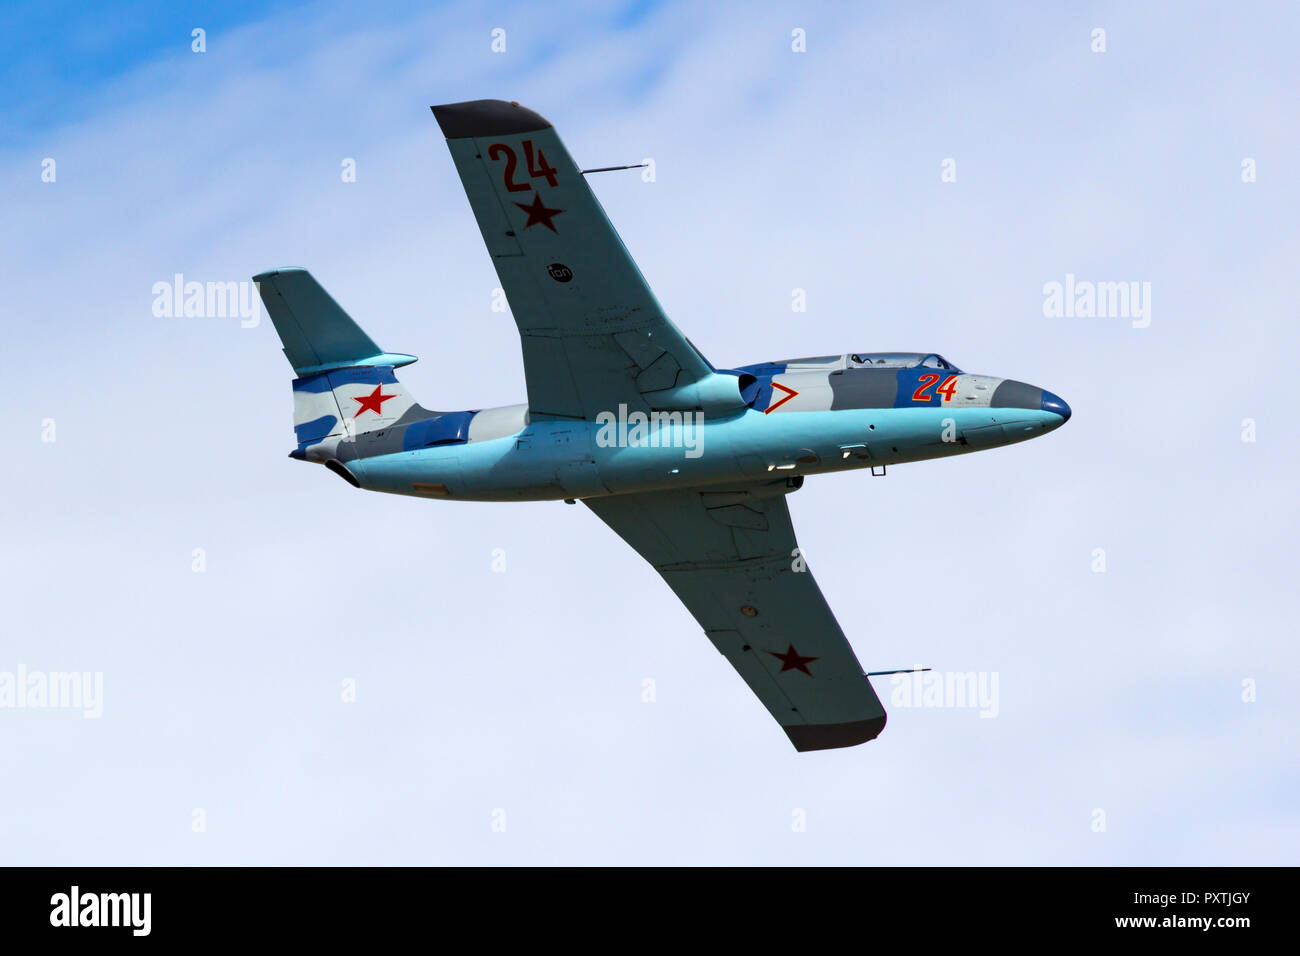 Pete Zaccagnino pilots 'Just Lucky' an L-29 Delfin Albatross during a Jet Class Heat Race as part of the 2018 Reno National Championship Air Races. Za - Stock Image